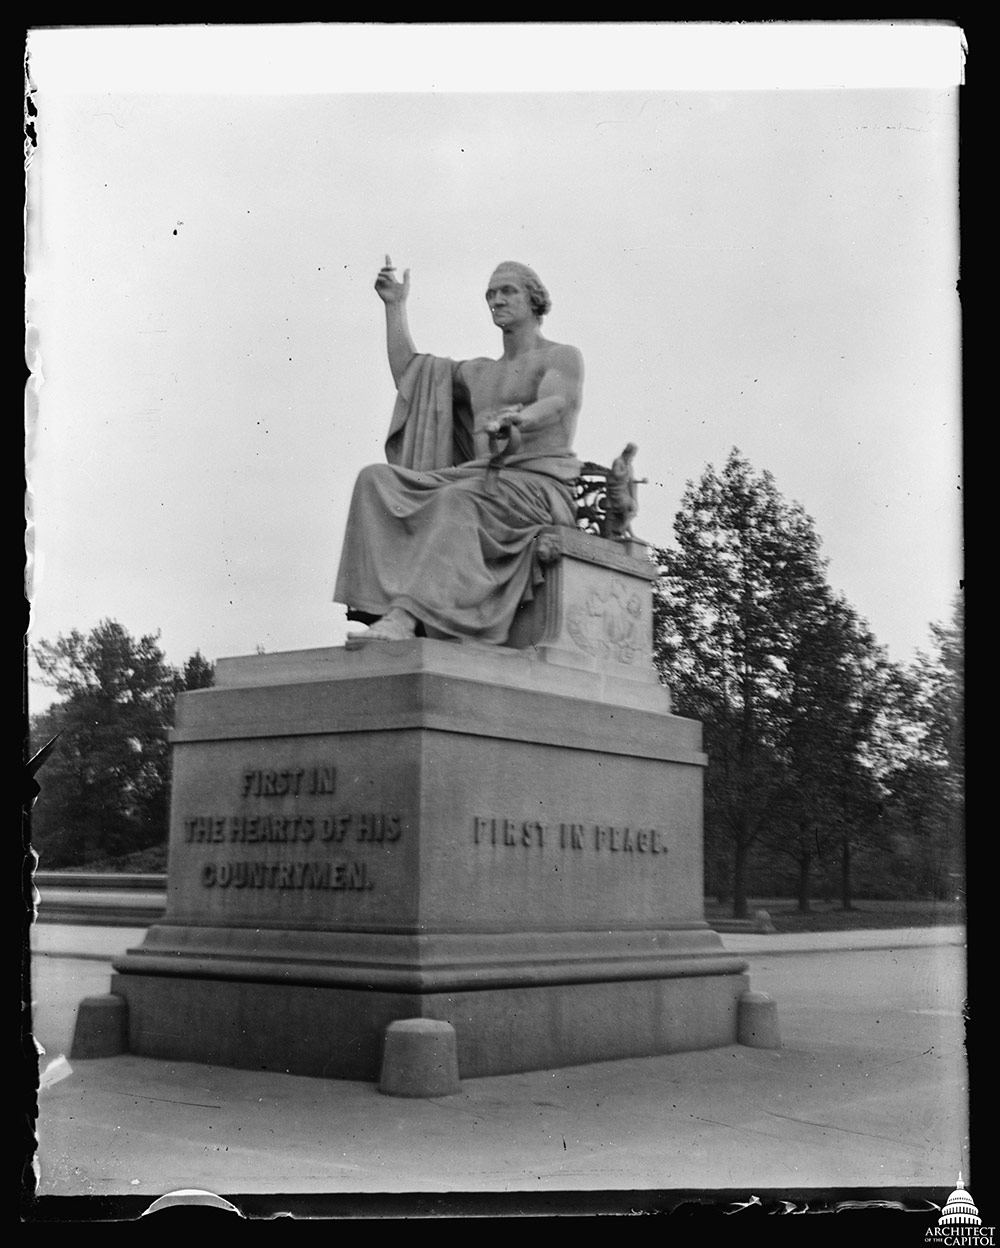 Statue of George Washington by Horatio Greenough